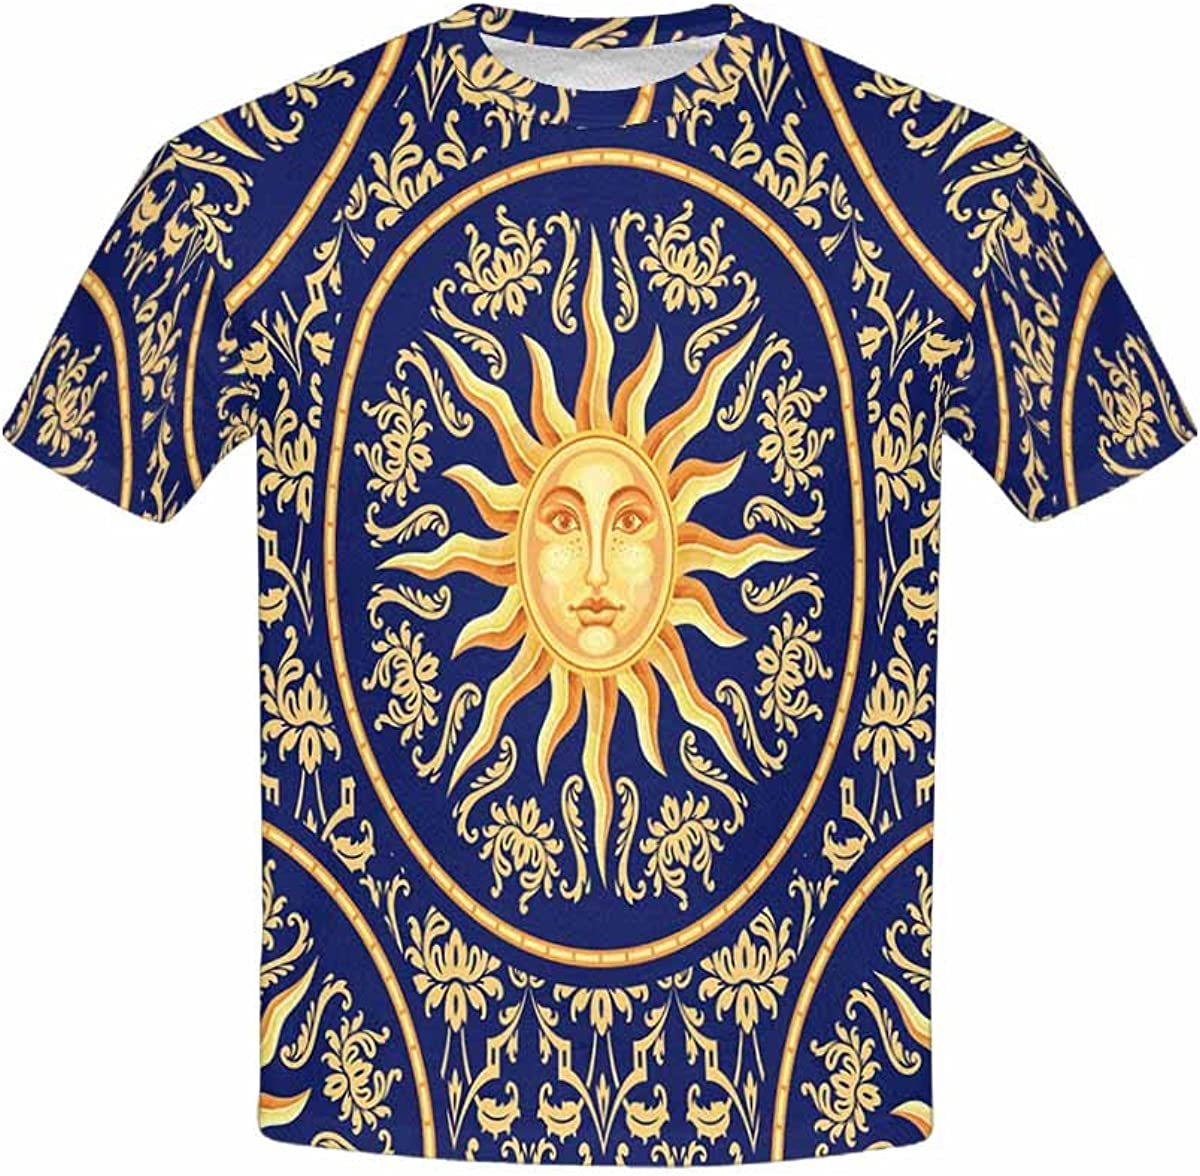 INTERESTPRINT Childs T-Shirt Blue and Gold Pattern with Sun Face XS-XL